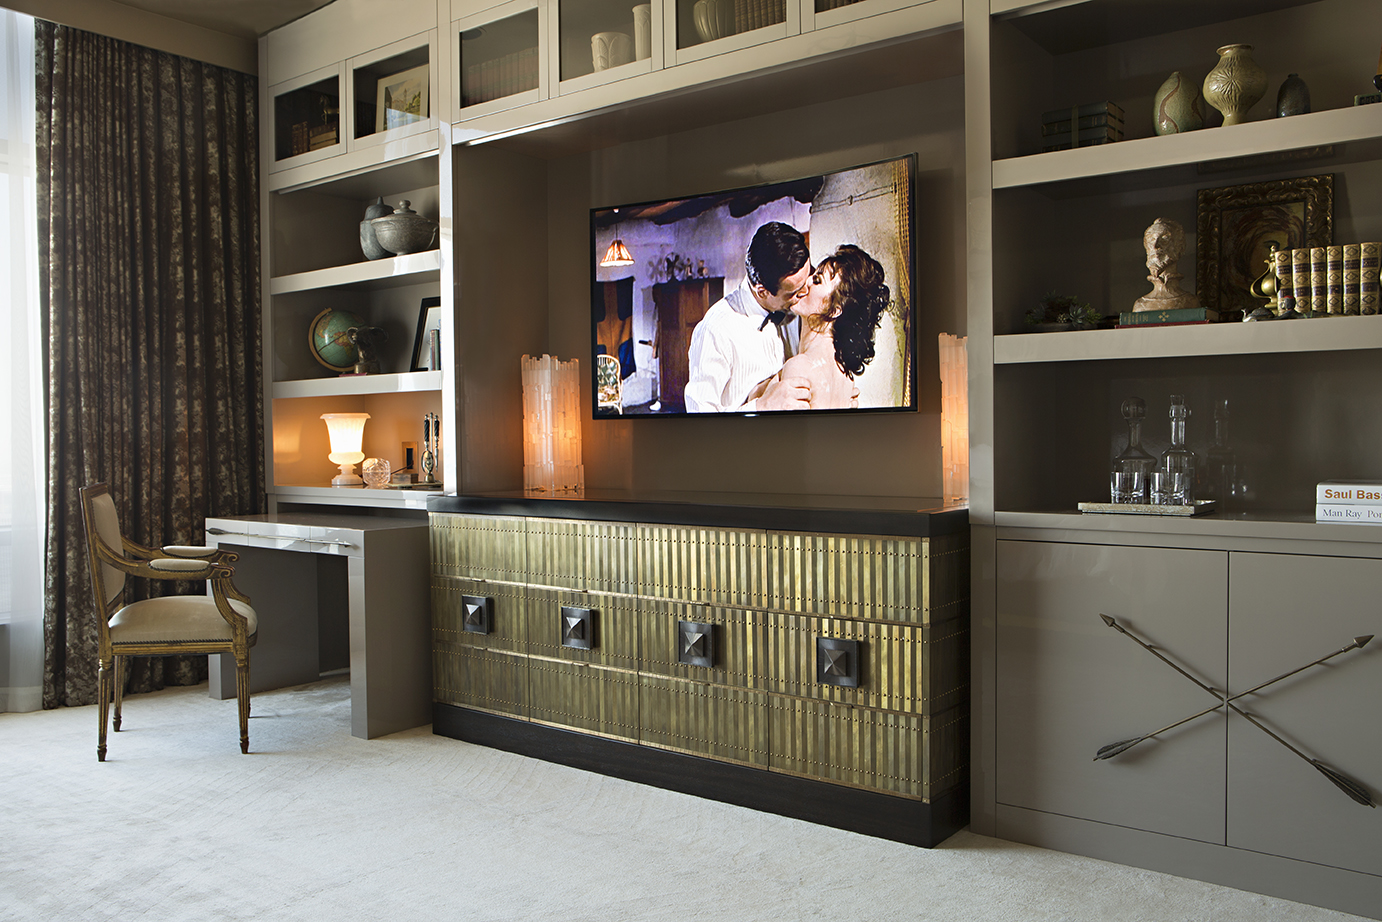 Interior design by Woodson and Rummerfields House of Design - Luxury wall unit designs - Living room designs - High Point Market 2017 Style Spotters - Furniture trends 2017